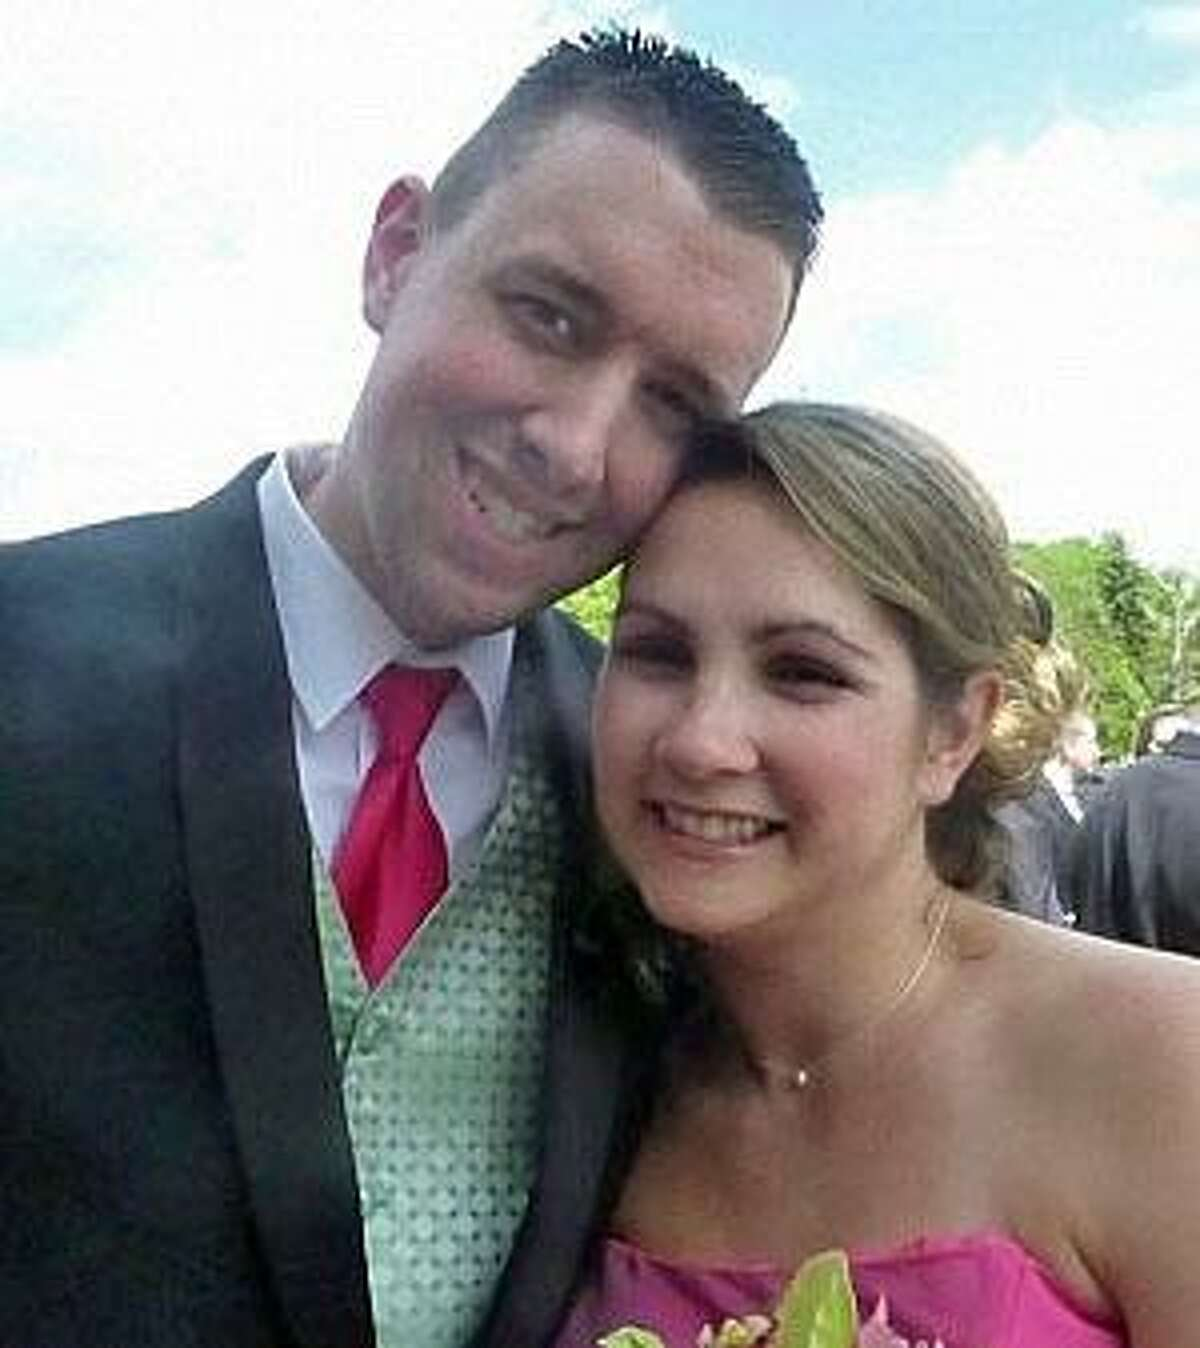 The late Danbury police Sgt. Drew Carlson and his wife, Erin